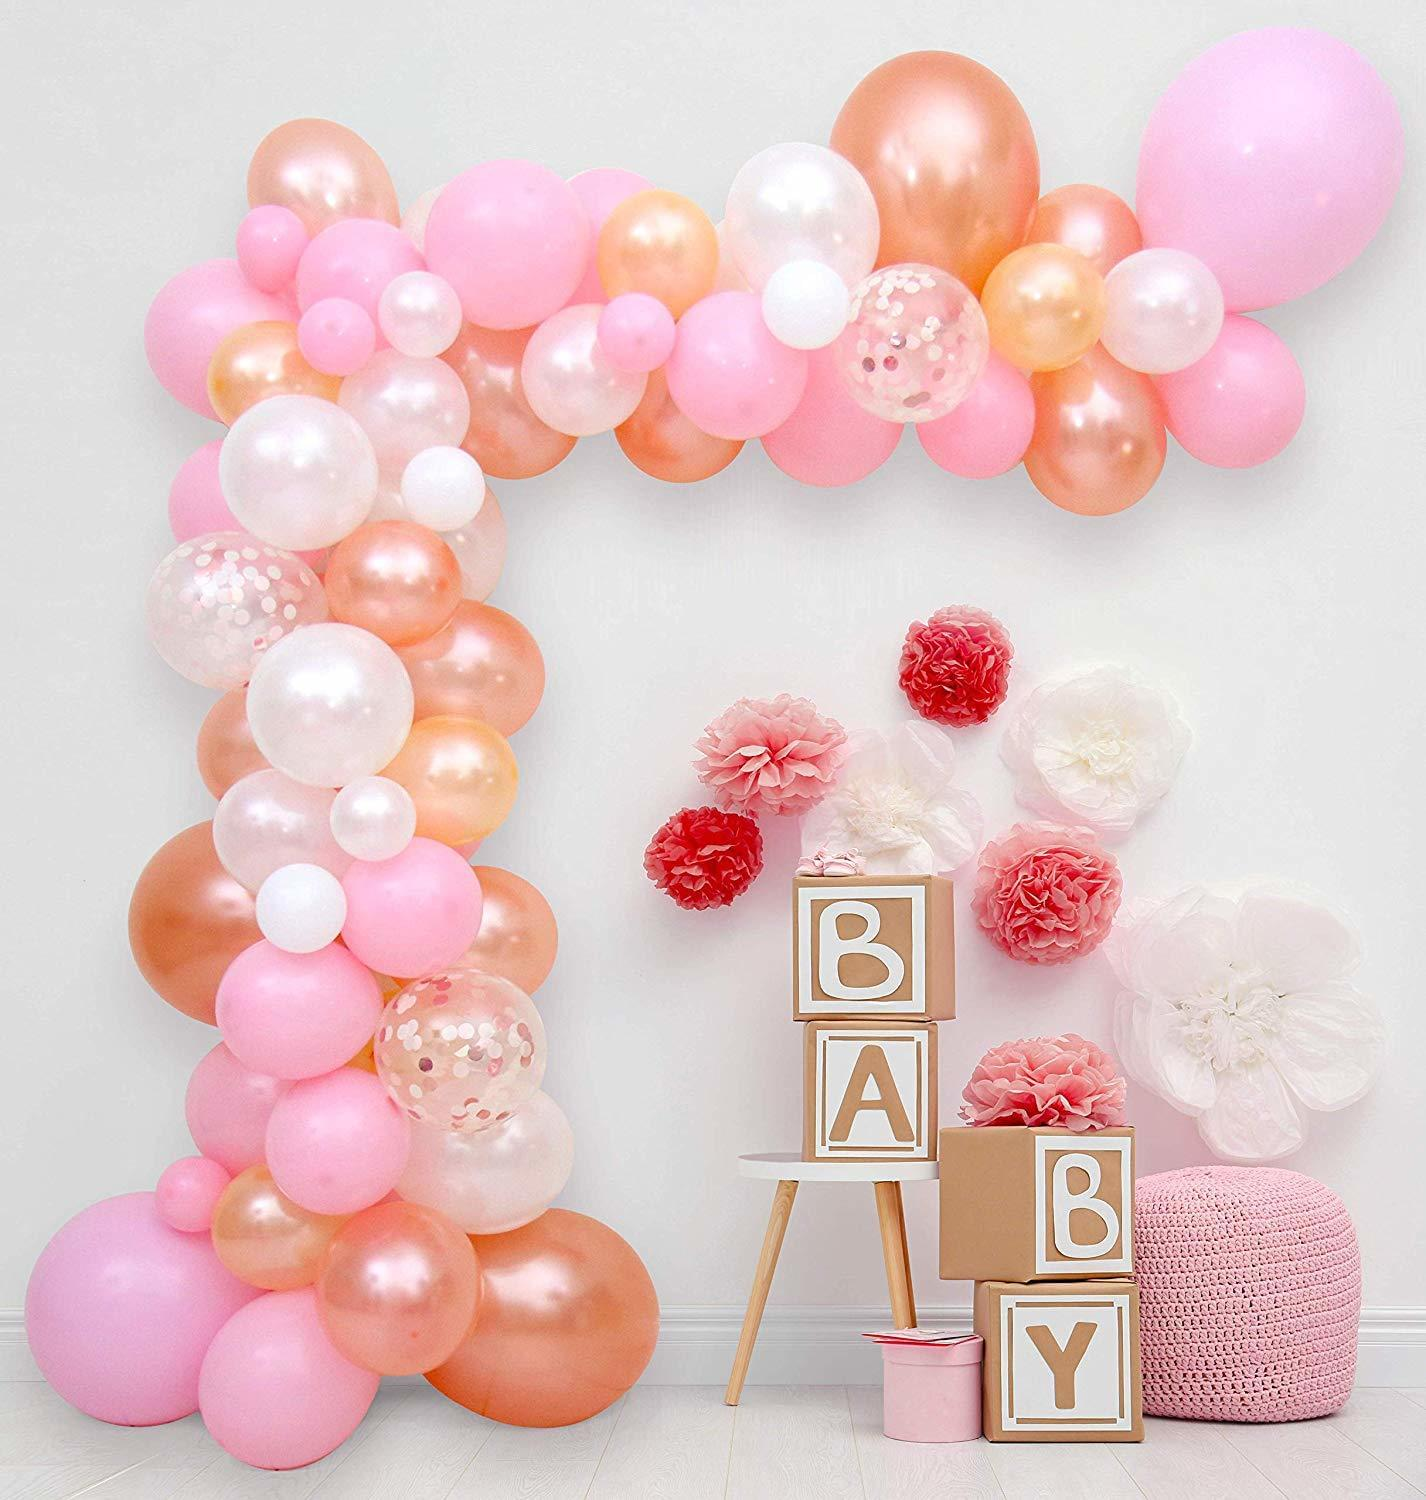 Balloon Arch Garland Kit Step By Step Instructions Blush Pink Rose Gold Baby Showers Birthdays Weddings Engagements